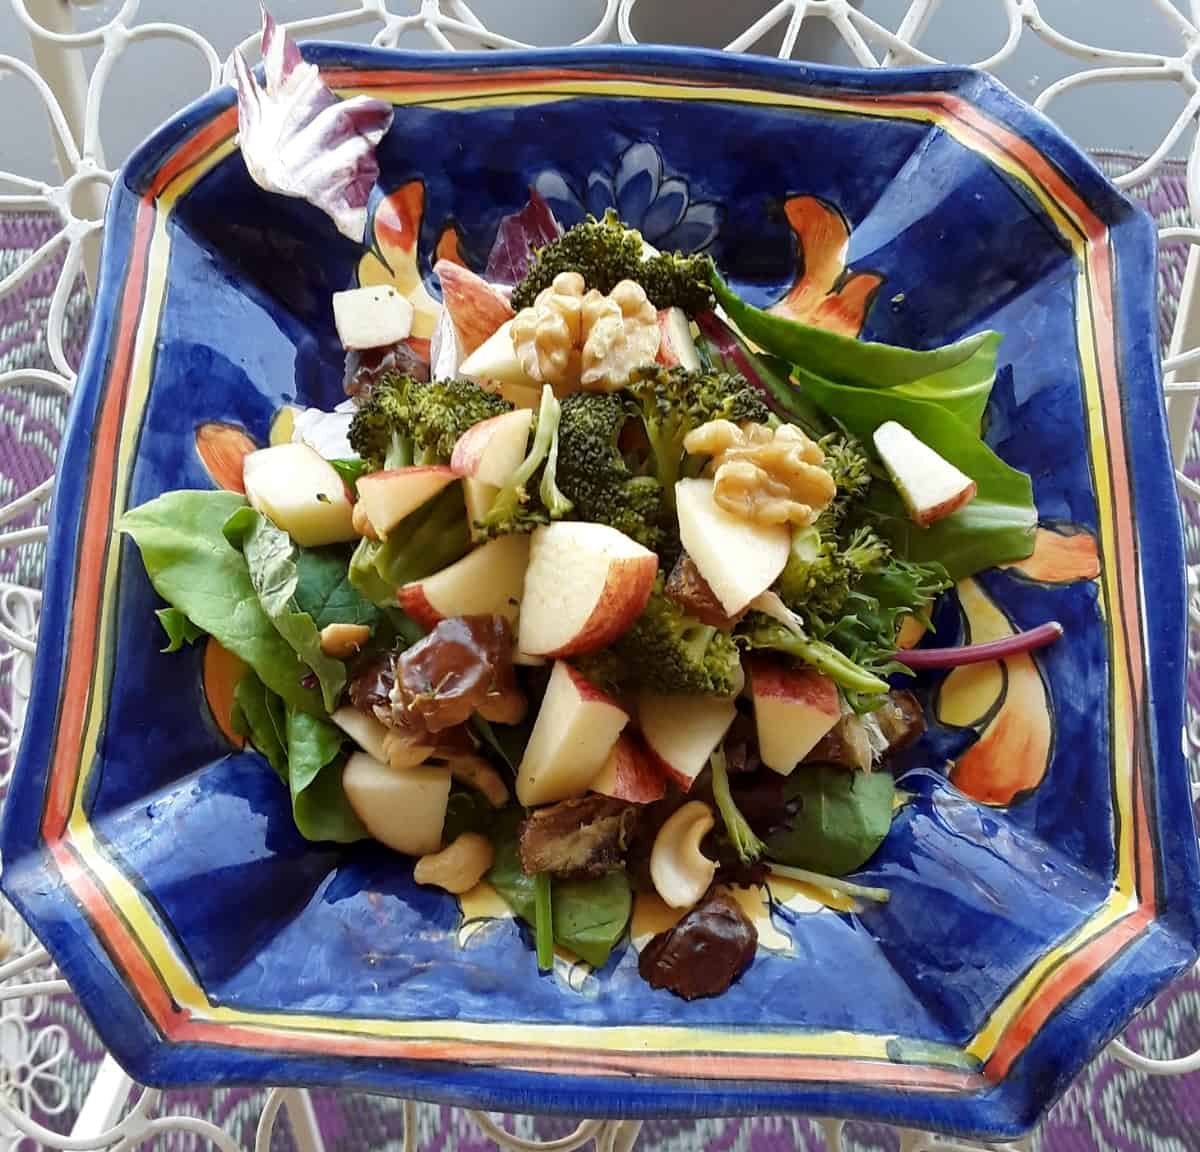 Salad with chopped cooked broccoli, chopped apple, walnuts and dates on a bed of mixed greens in blue ceramic plate.